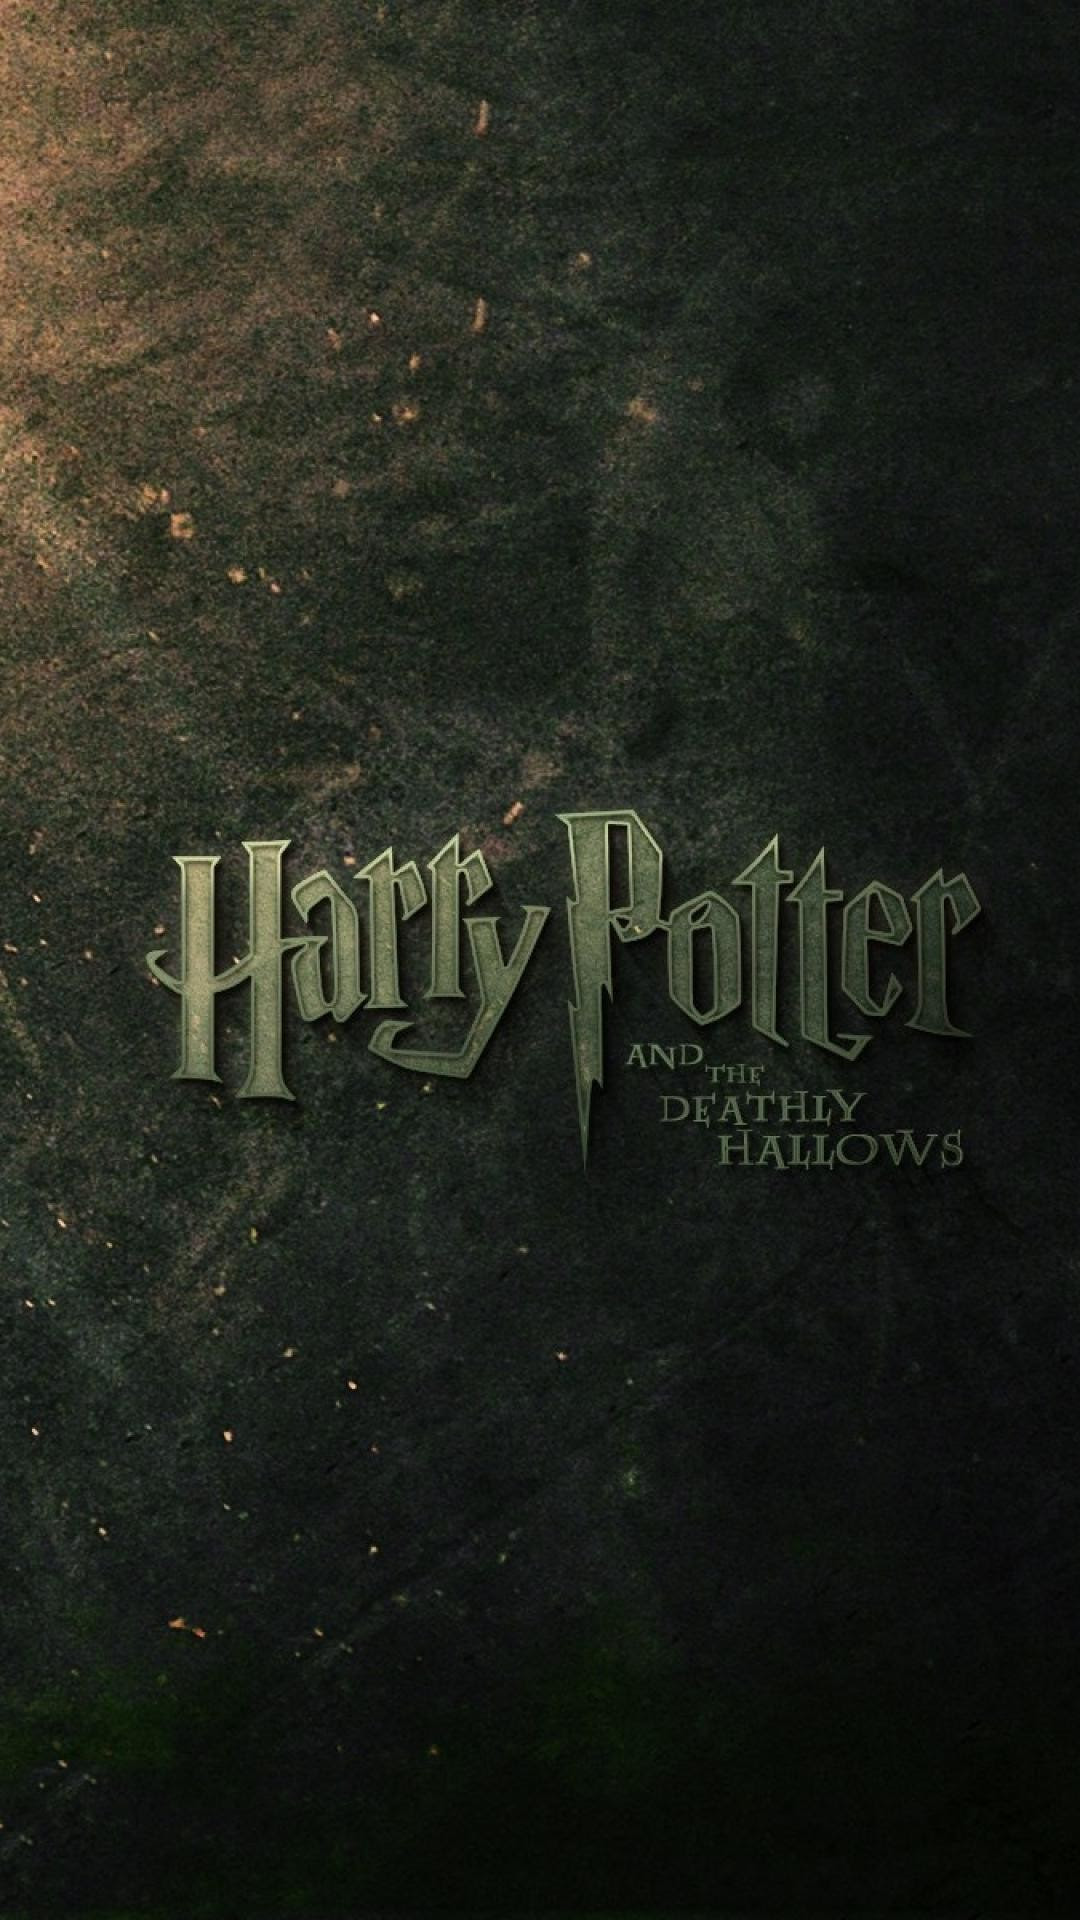 Harry Potter Quotes Wallpapers (56+ images)